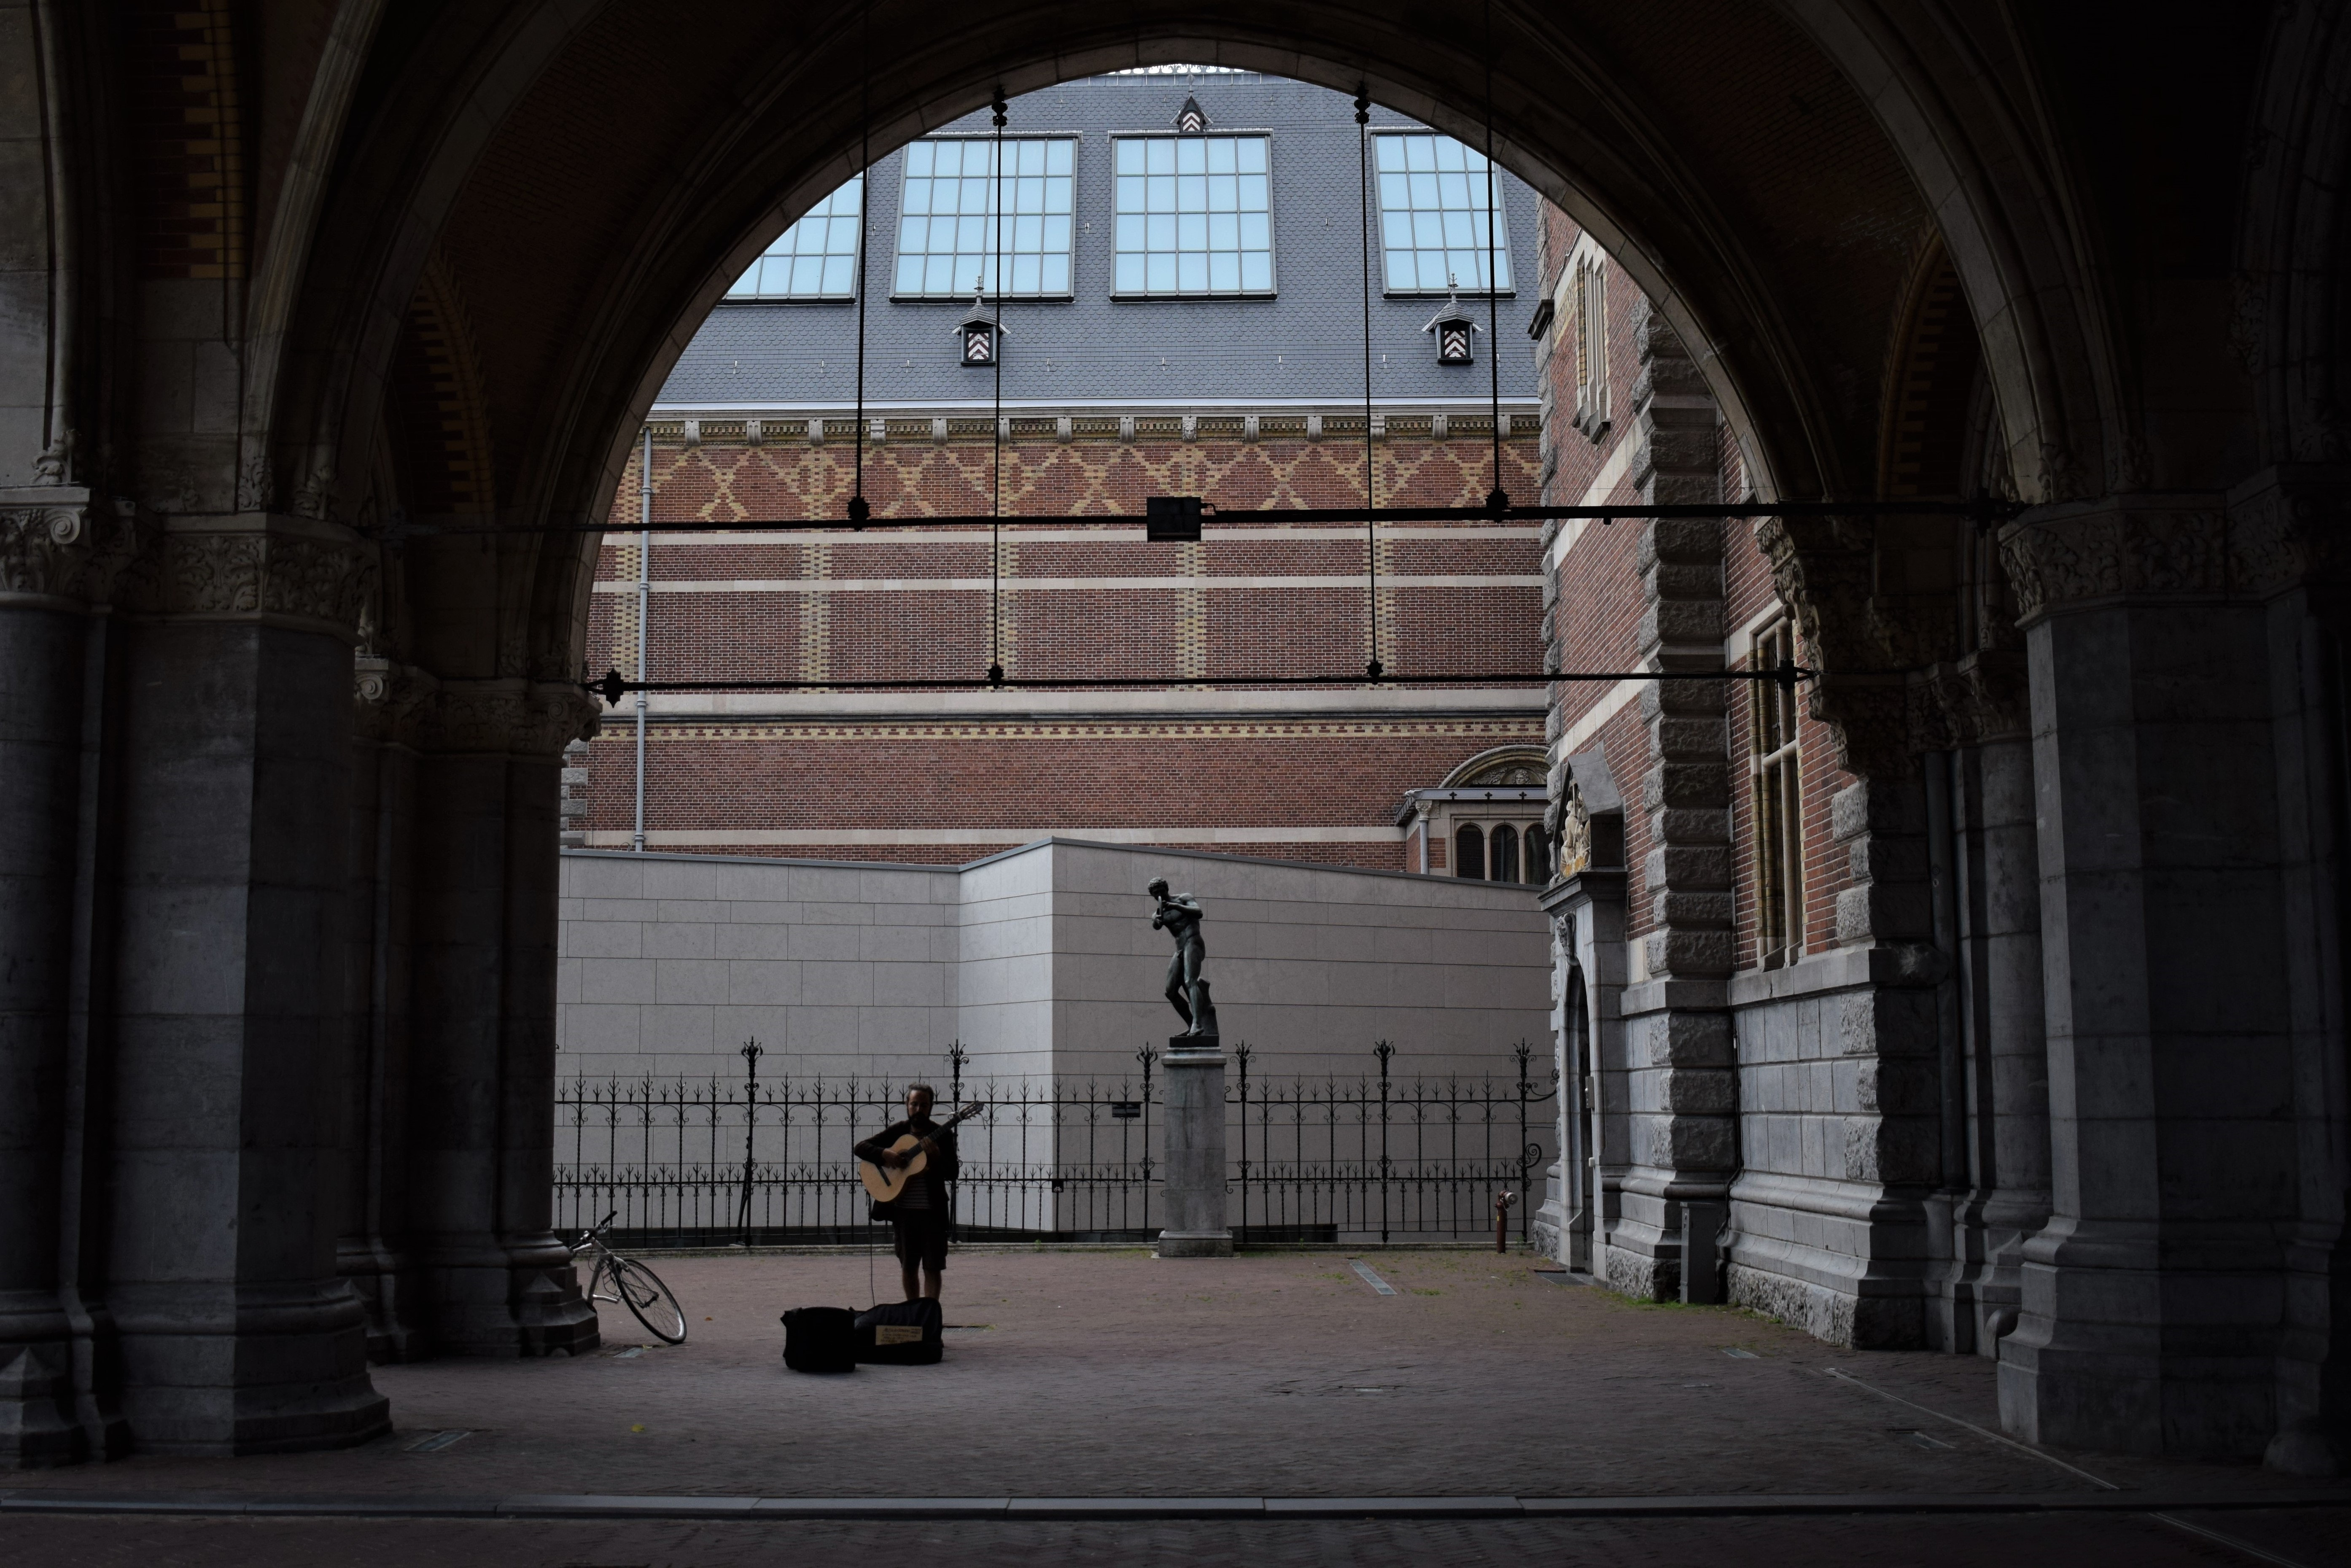 Person Playing Guitar on Street, Adult, Monument, Street, Stone, HQ Photo